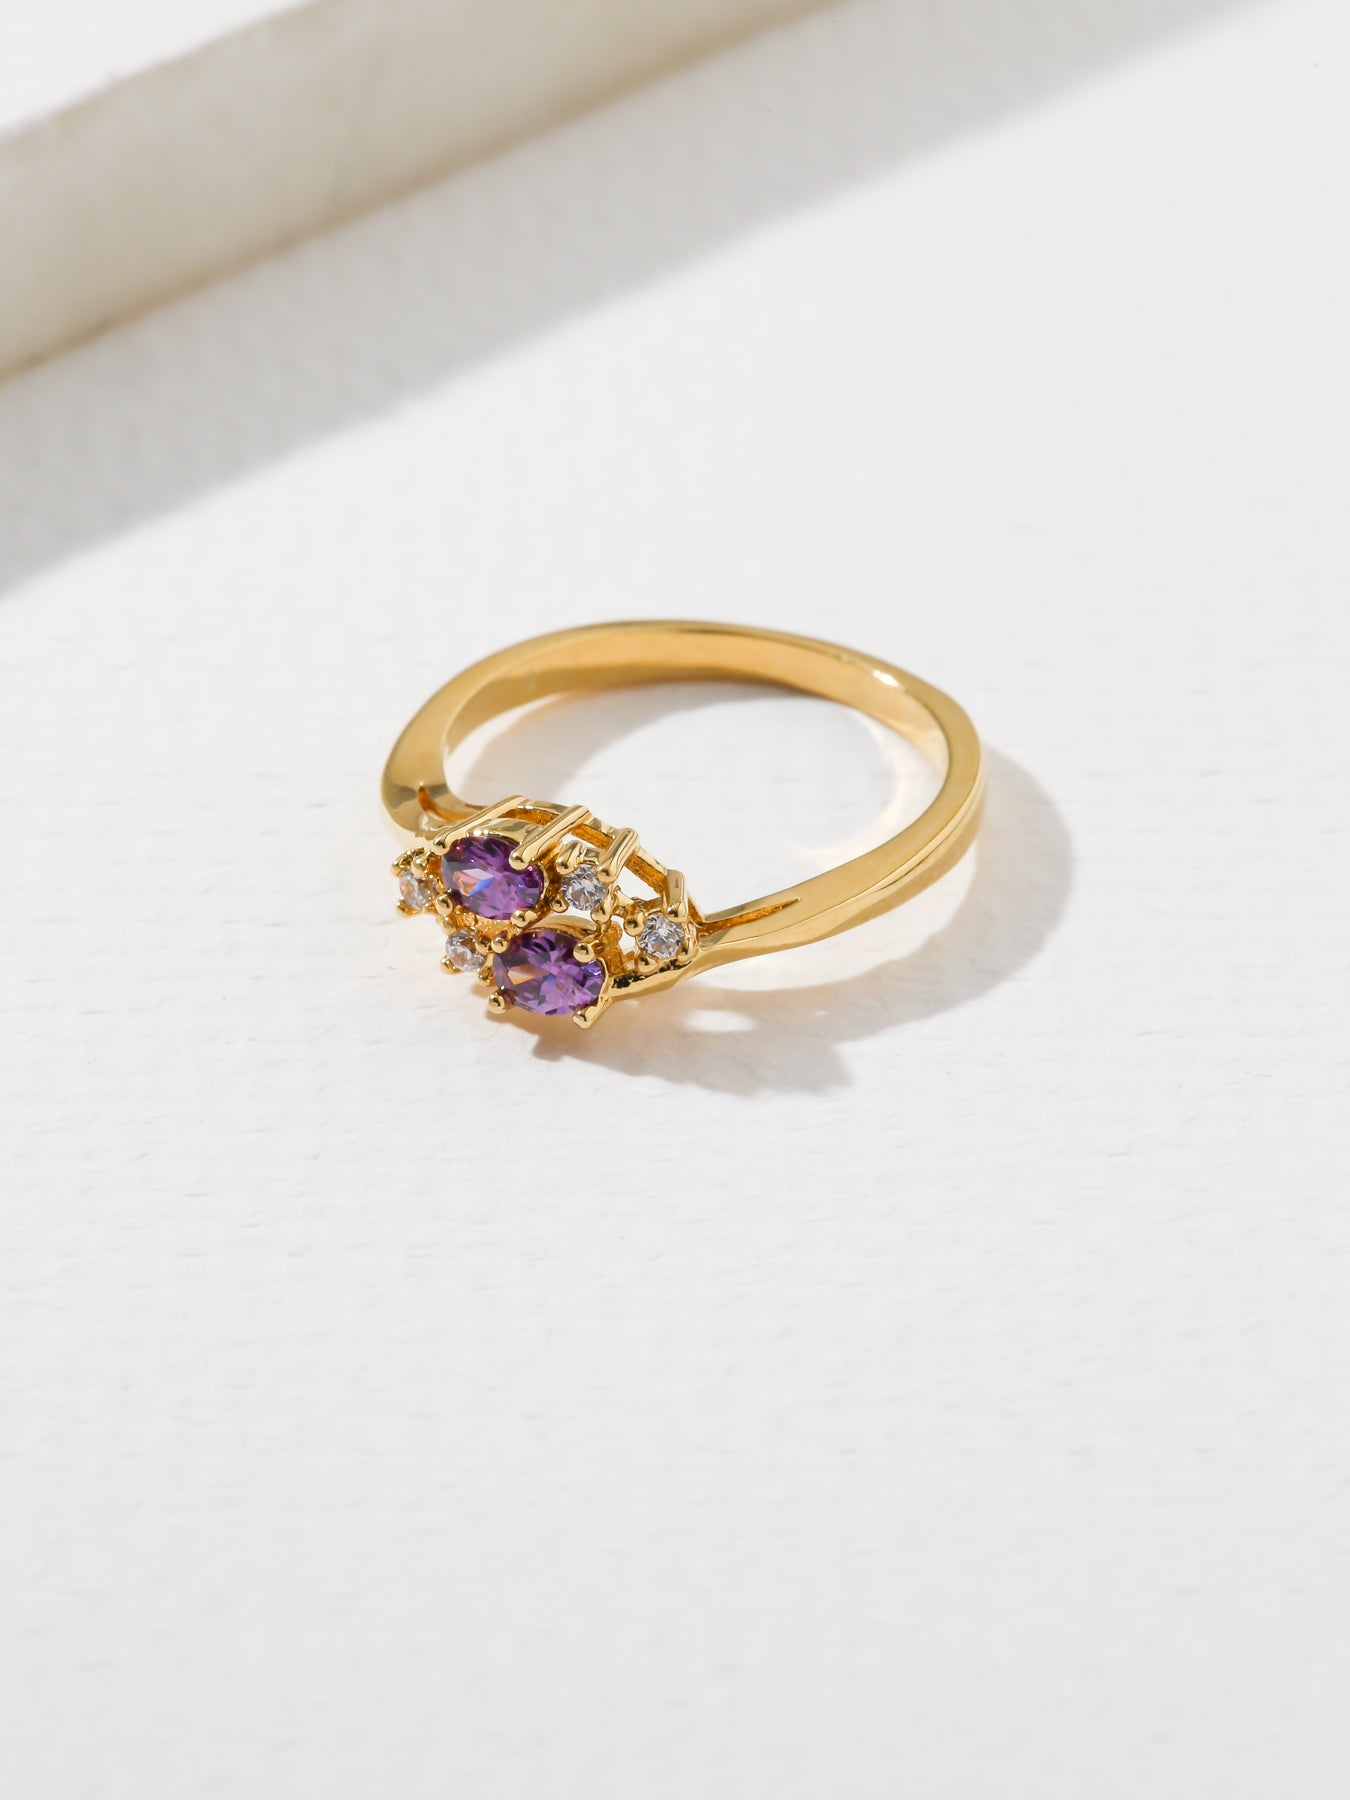 The Triumph Birthstone Ring Amethyst